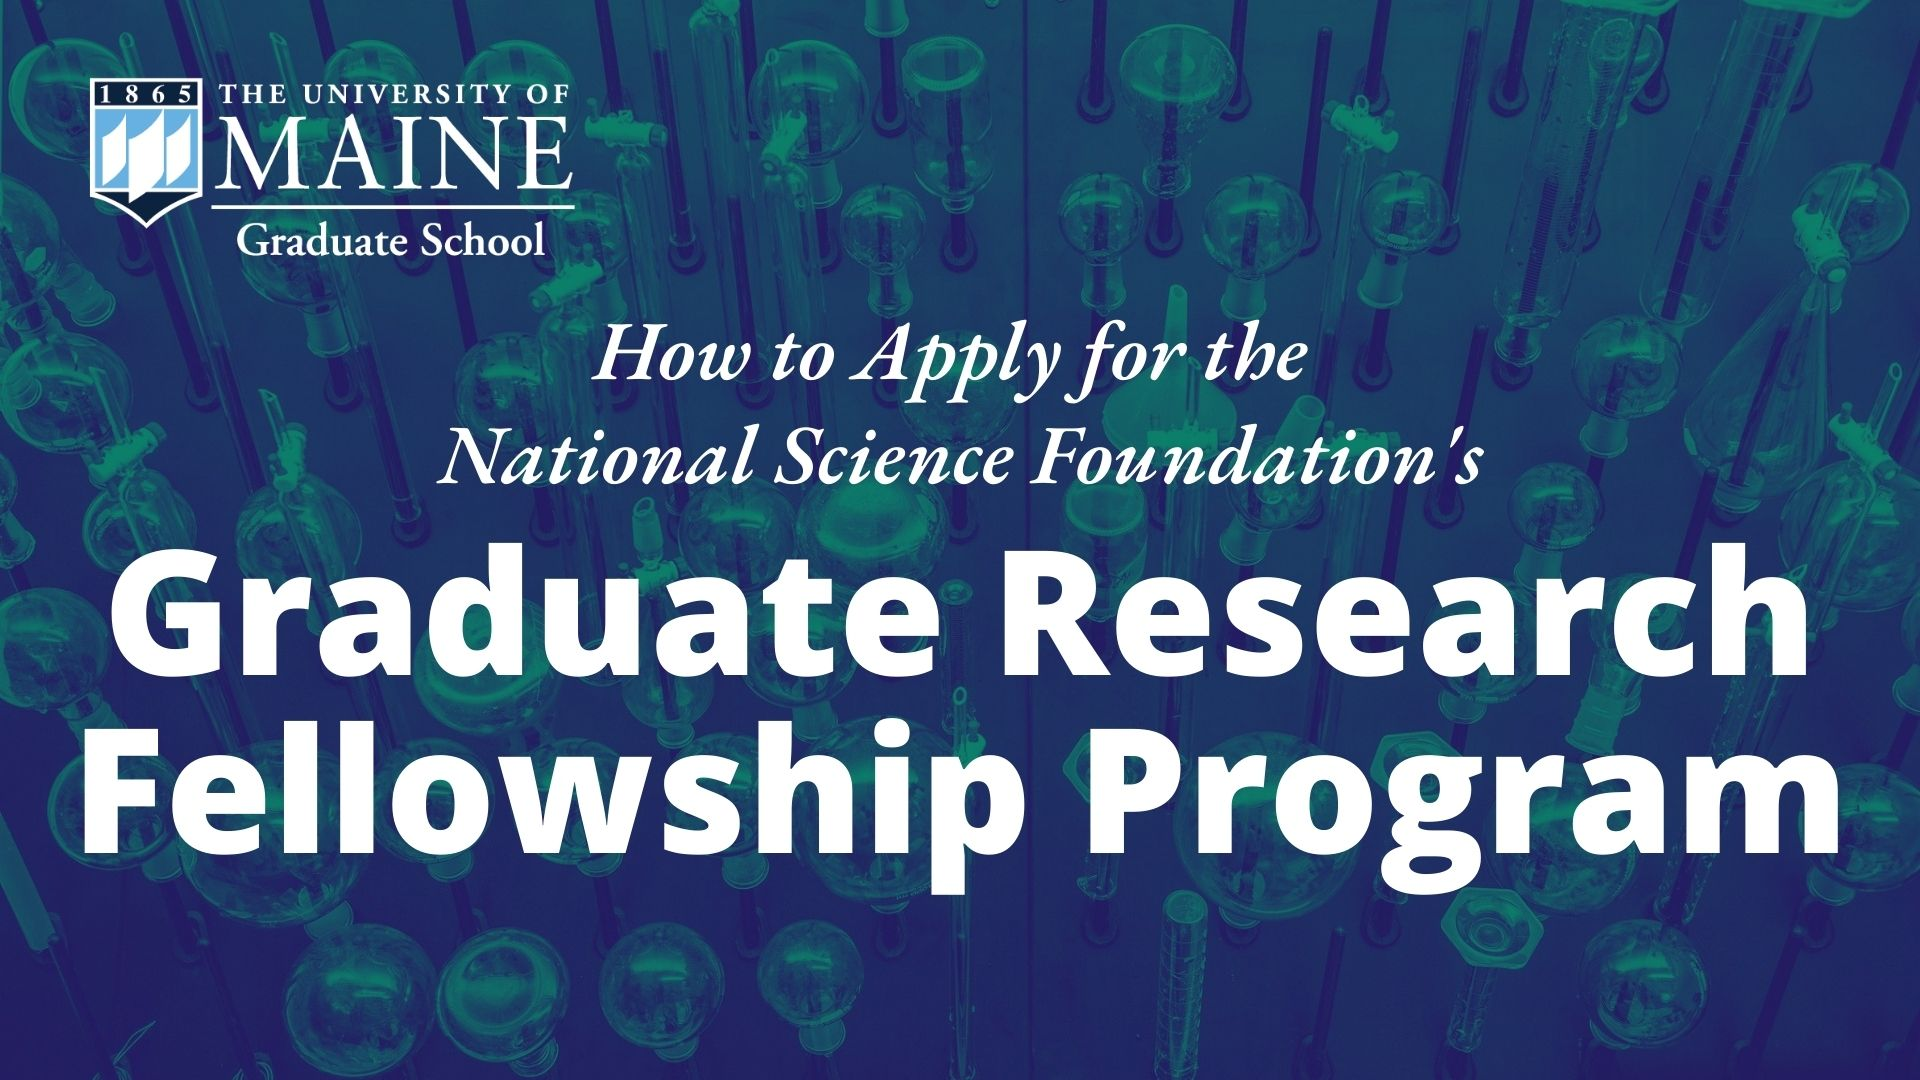 The University of Maine How to how to apply for the NSF's Graduate Research Fellowship Program